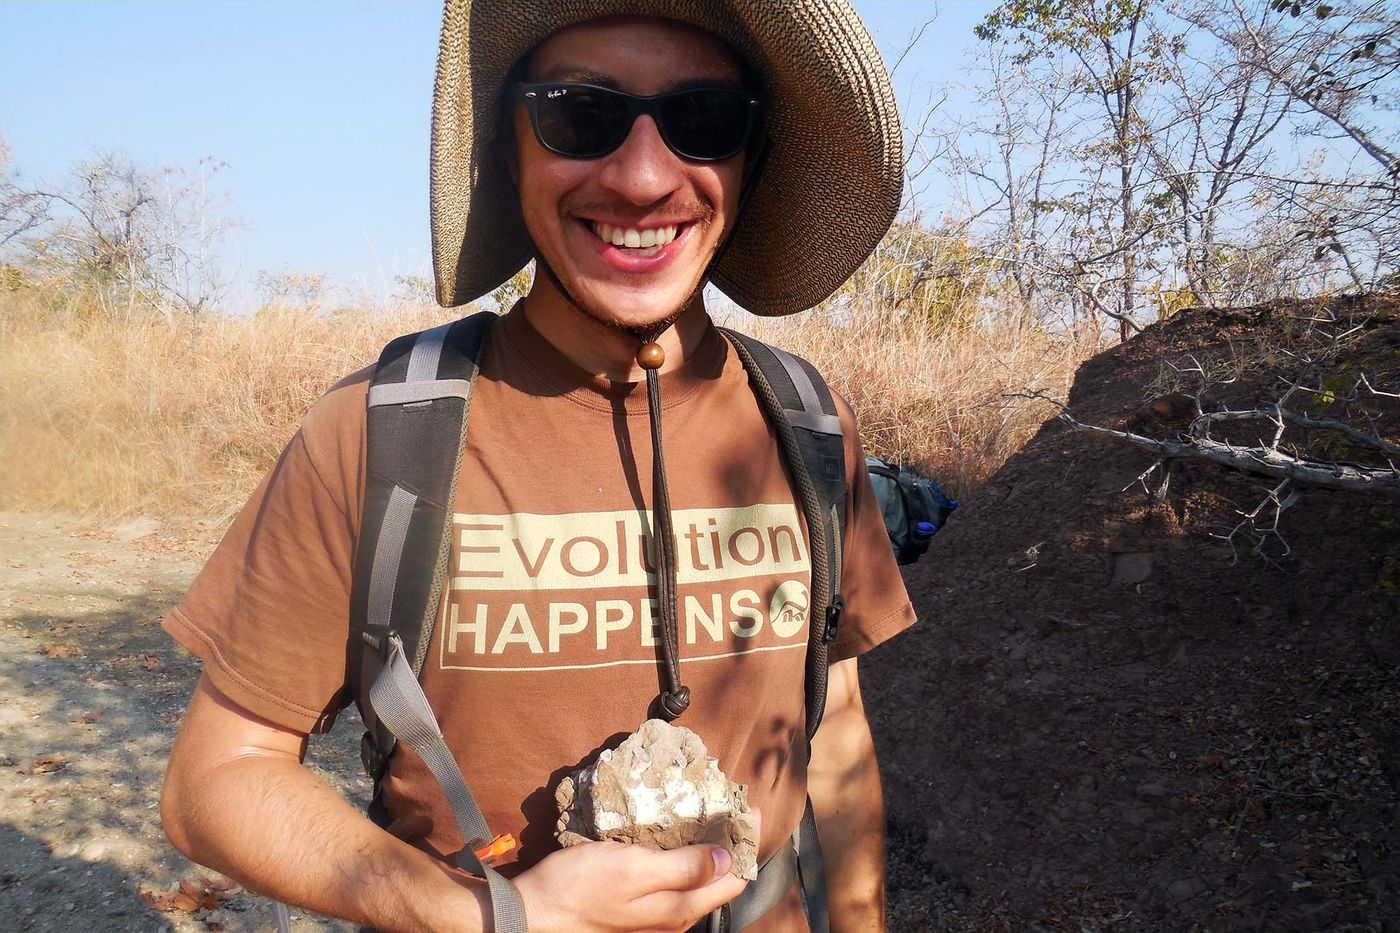 """A smiling man wearing a hat, sunglass, and a shirt that reads """"Evolution happens"""" holds a chunk of fossilized bone in his hand. Tall, dry grass and a mound of rock and dirt are visible in the background."""